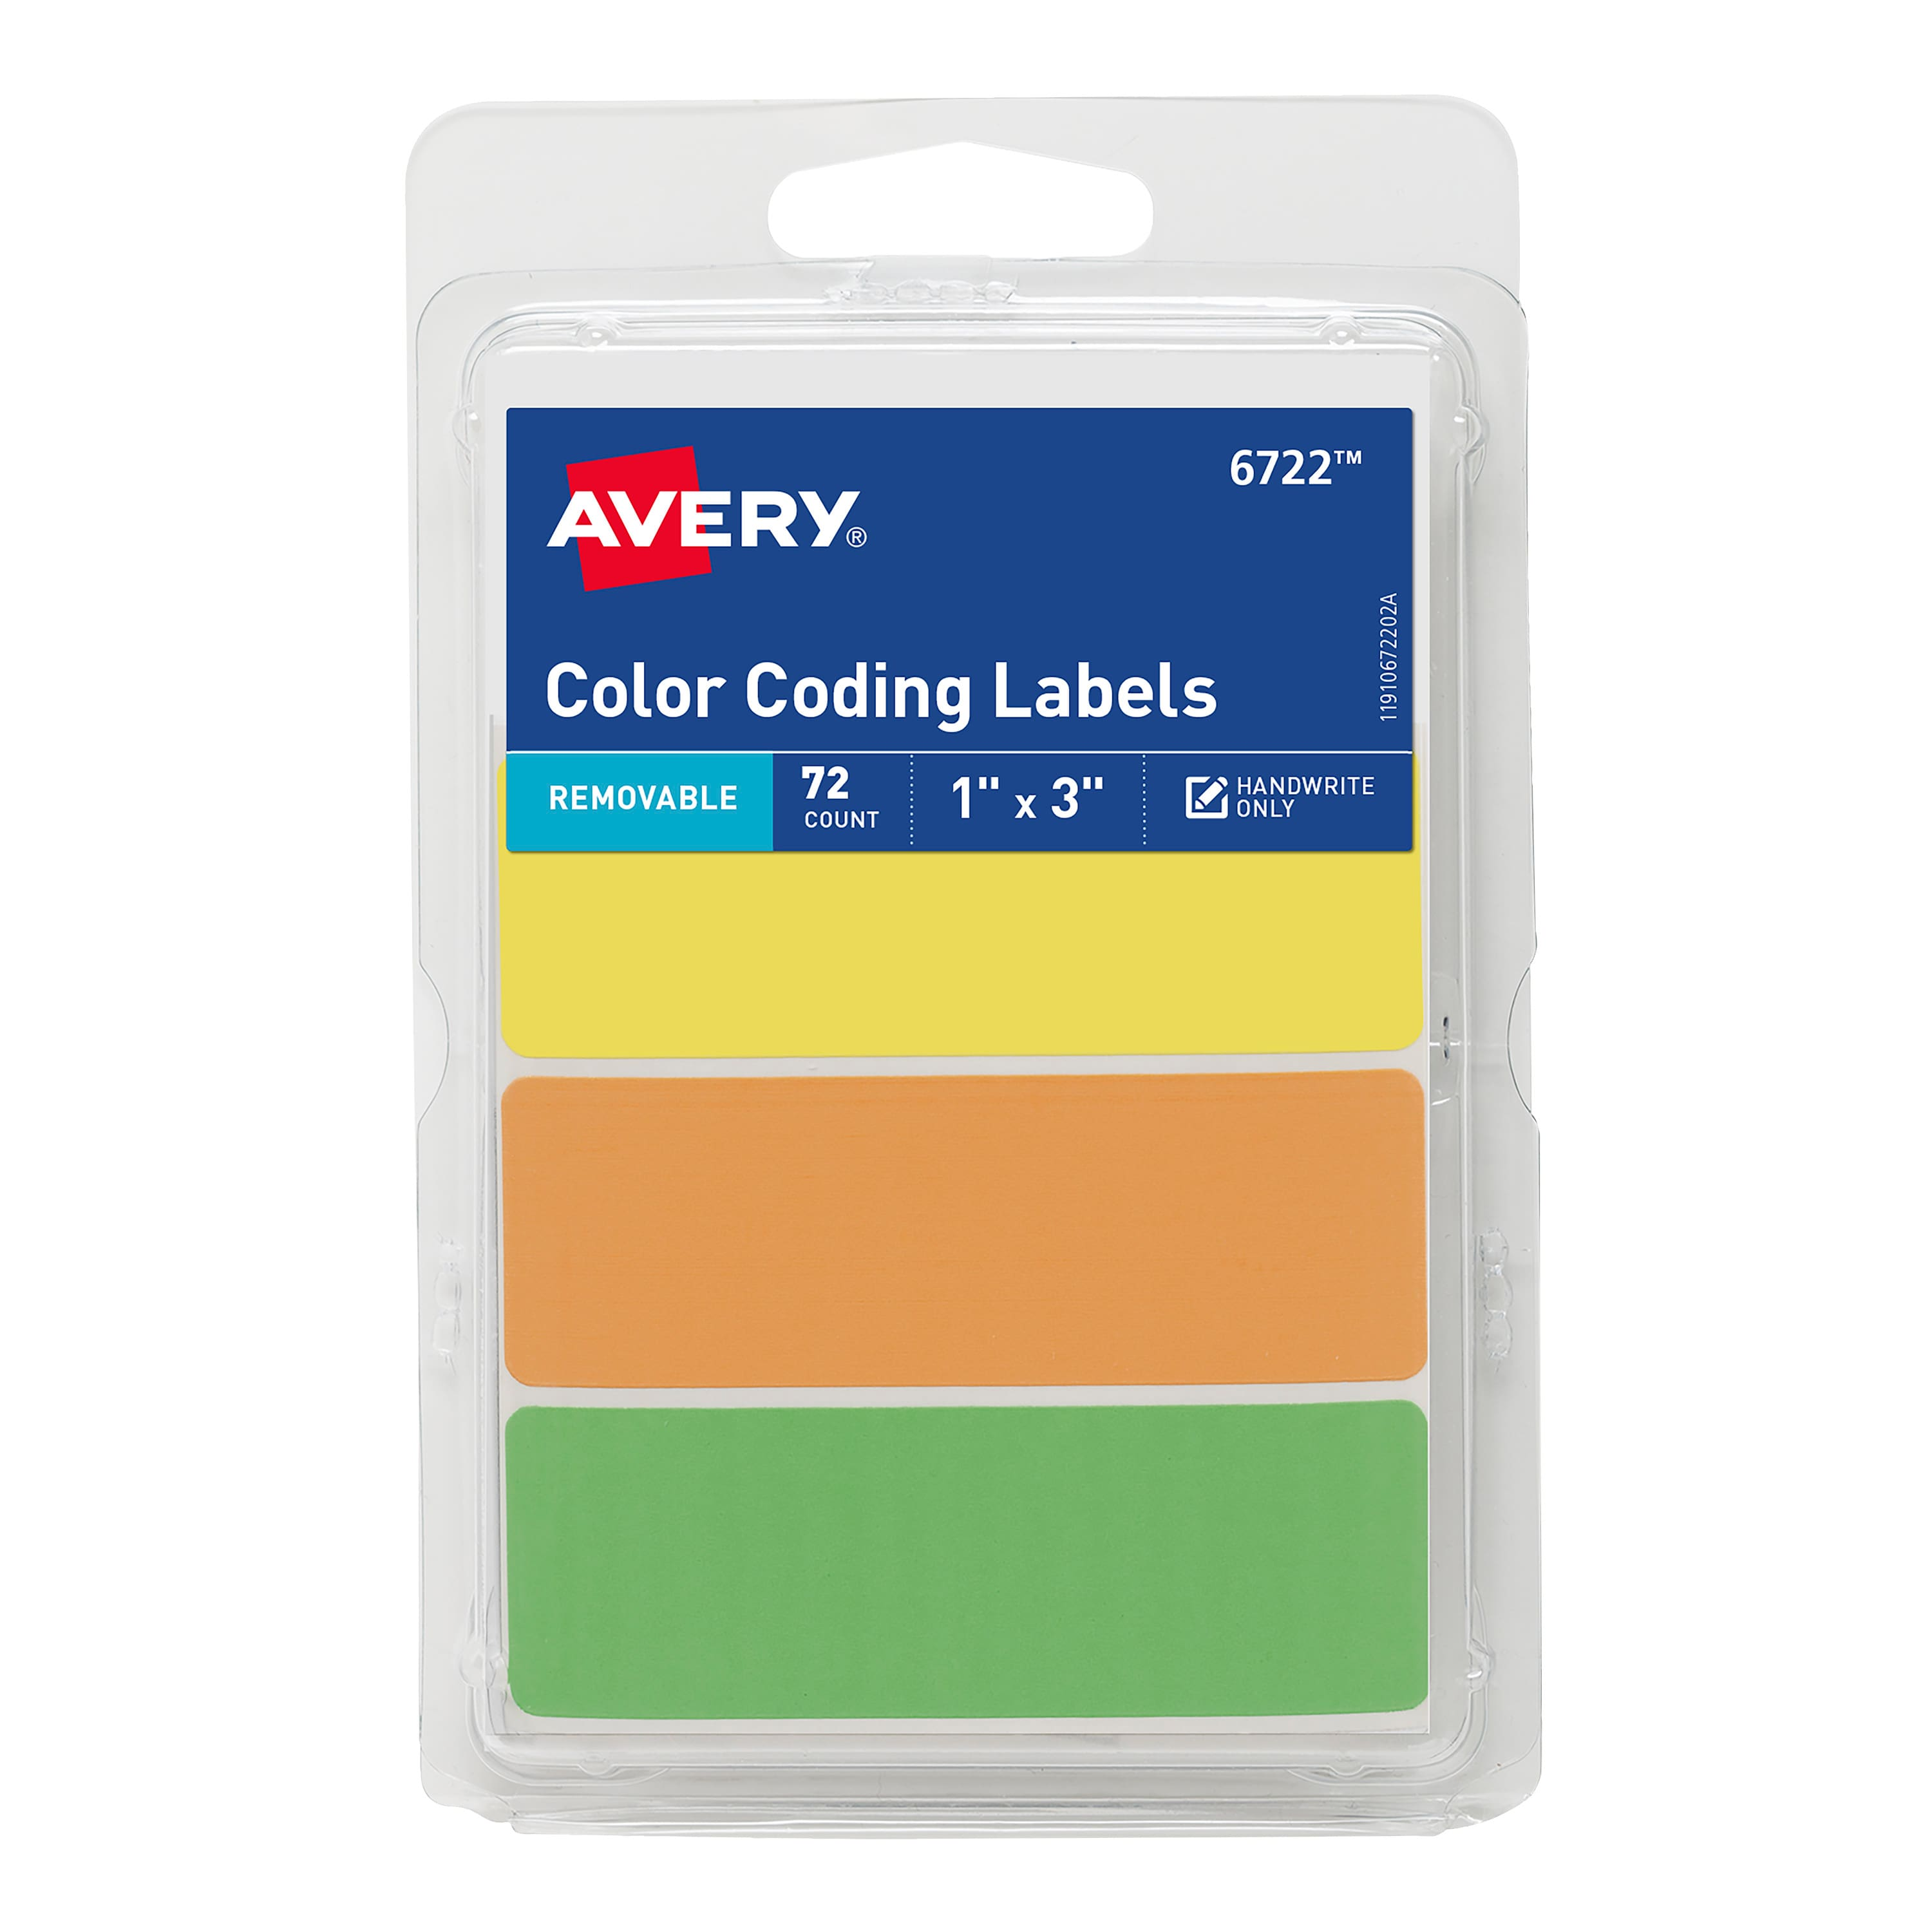 Avery Rectangular Color Coding Labels, 1 x 3 Inches, Assorted, Removable, Pack of 72 $1.68 Amazon